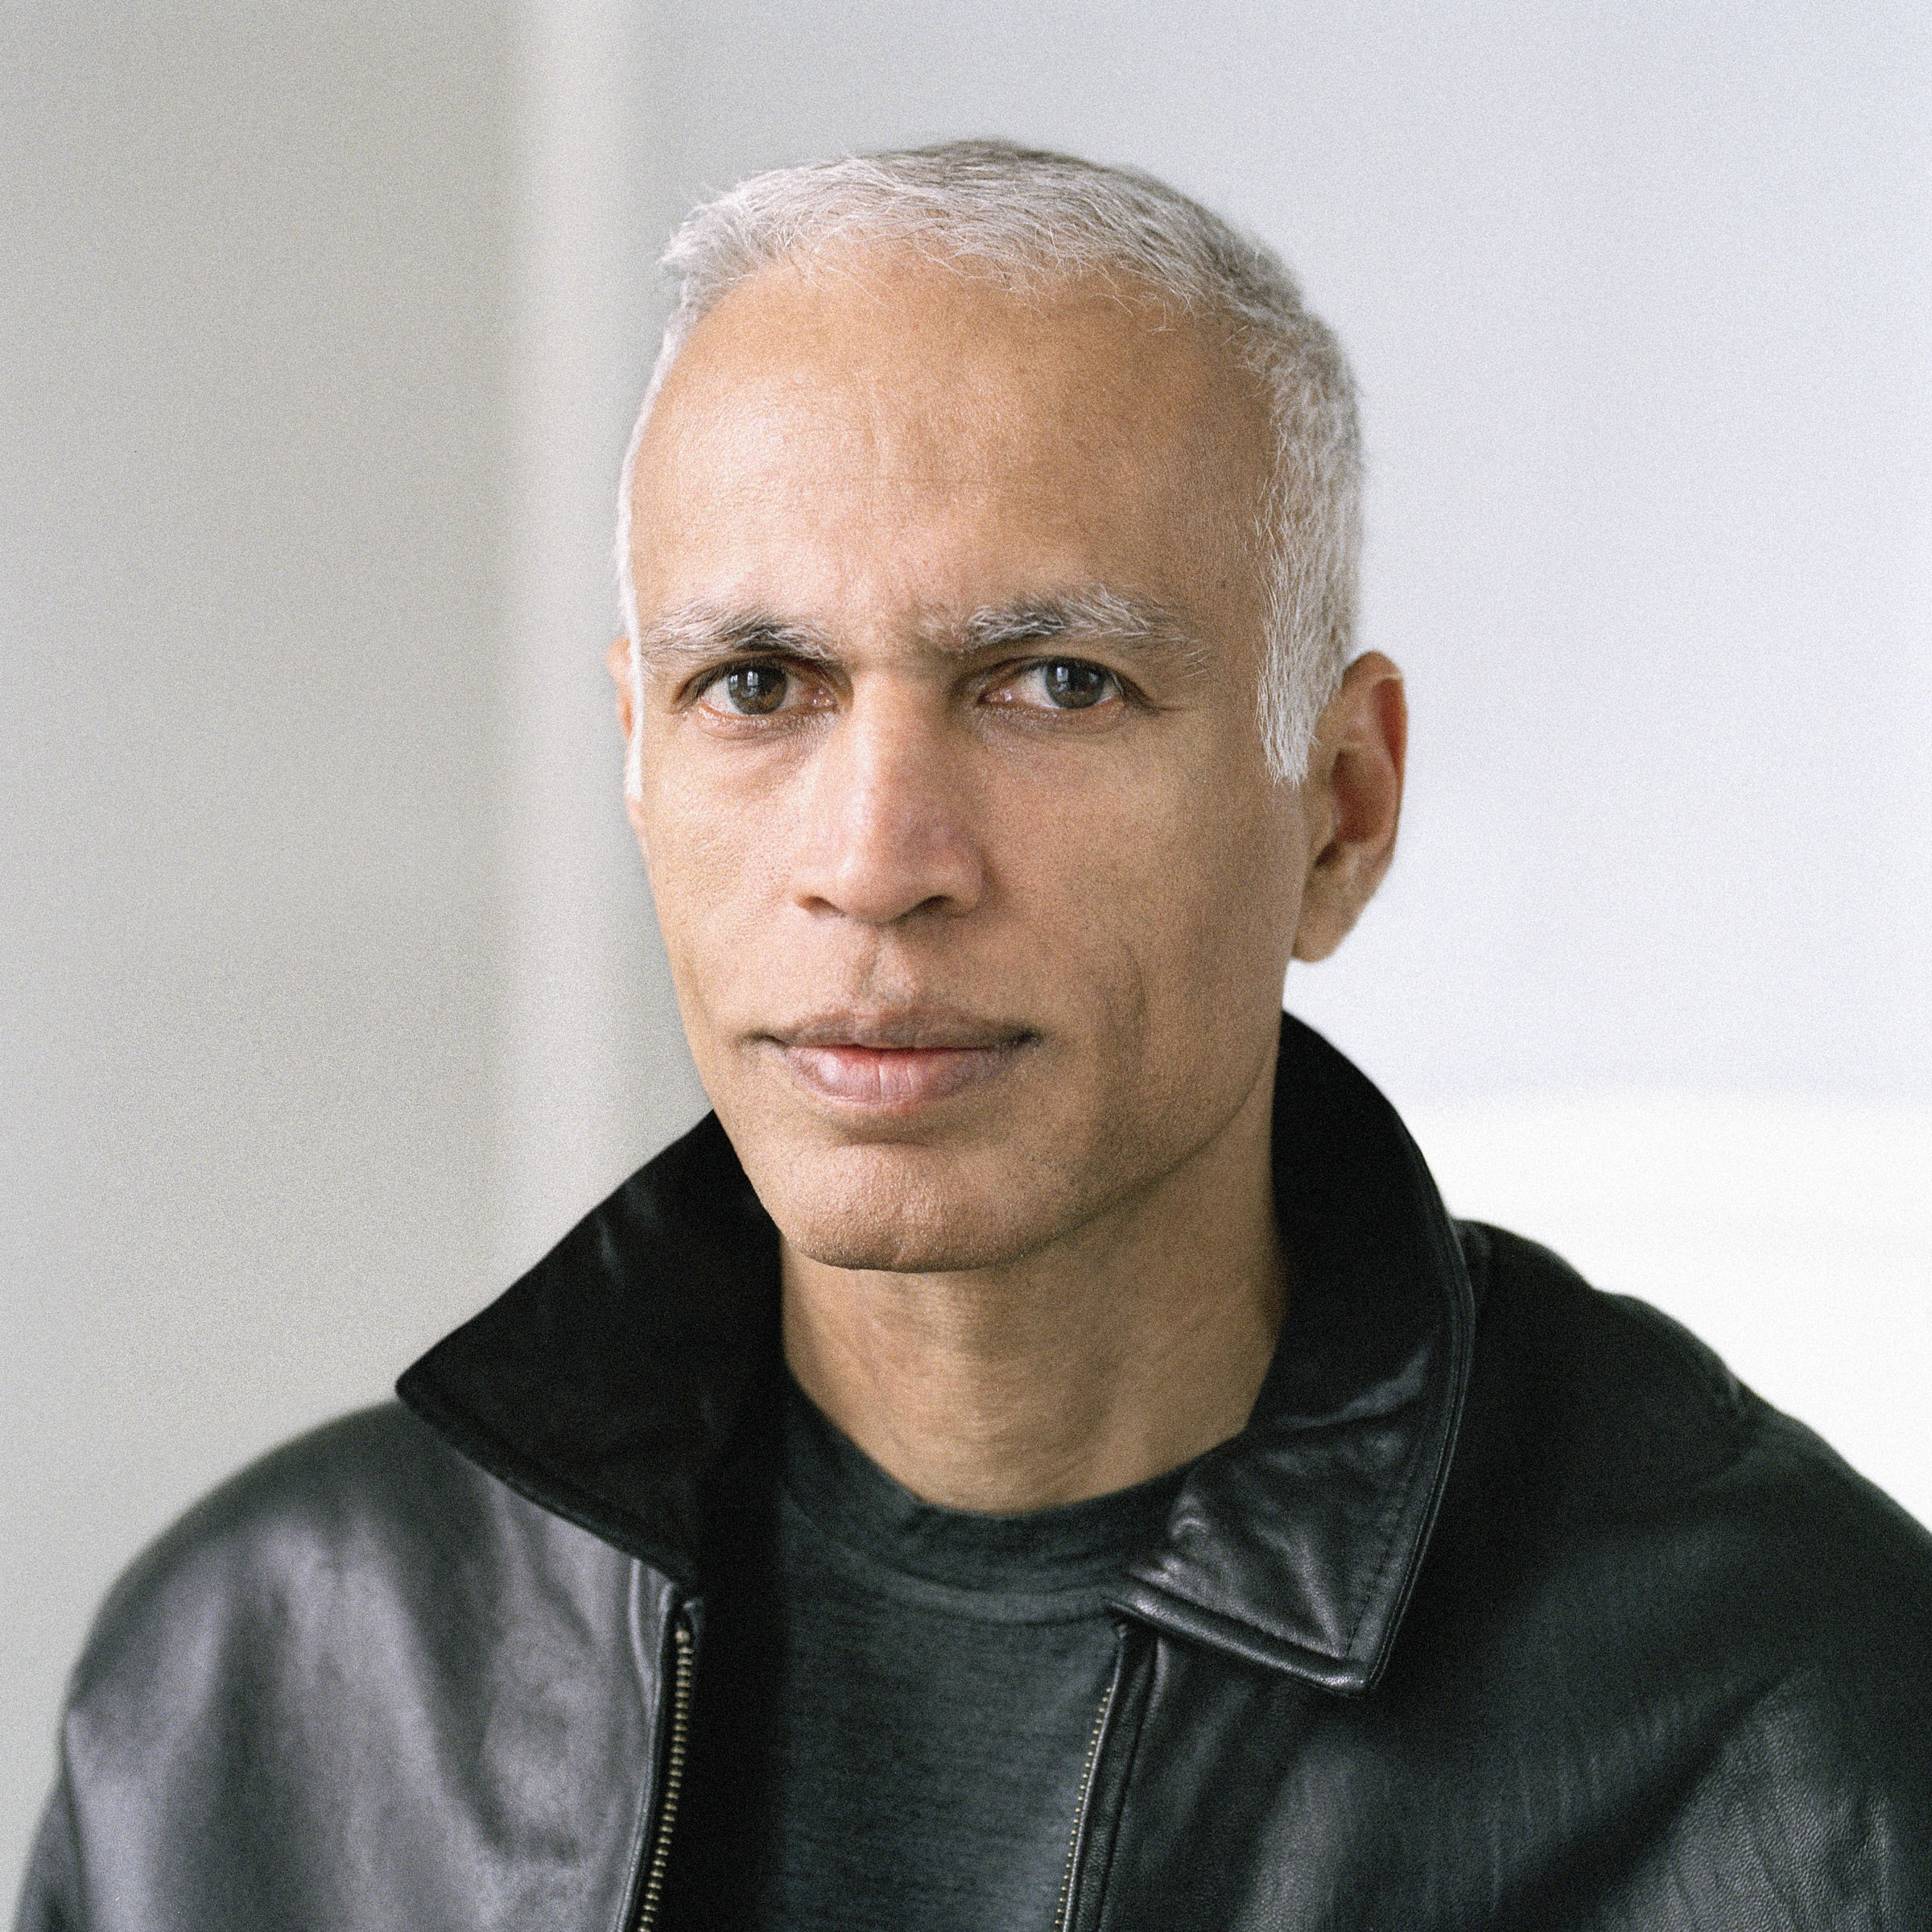 Manil Suri's The Death of Vishnu was a finalist for the PEN/Faulkner Award.